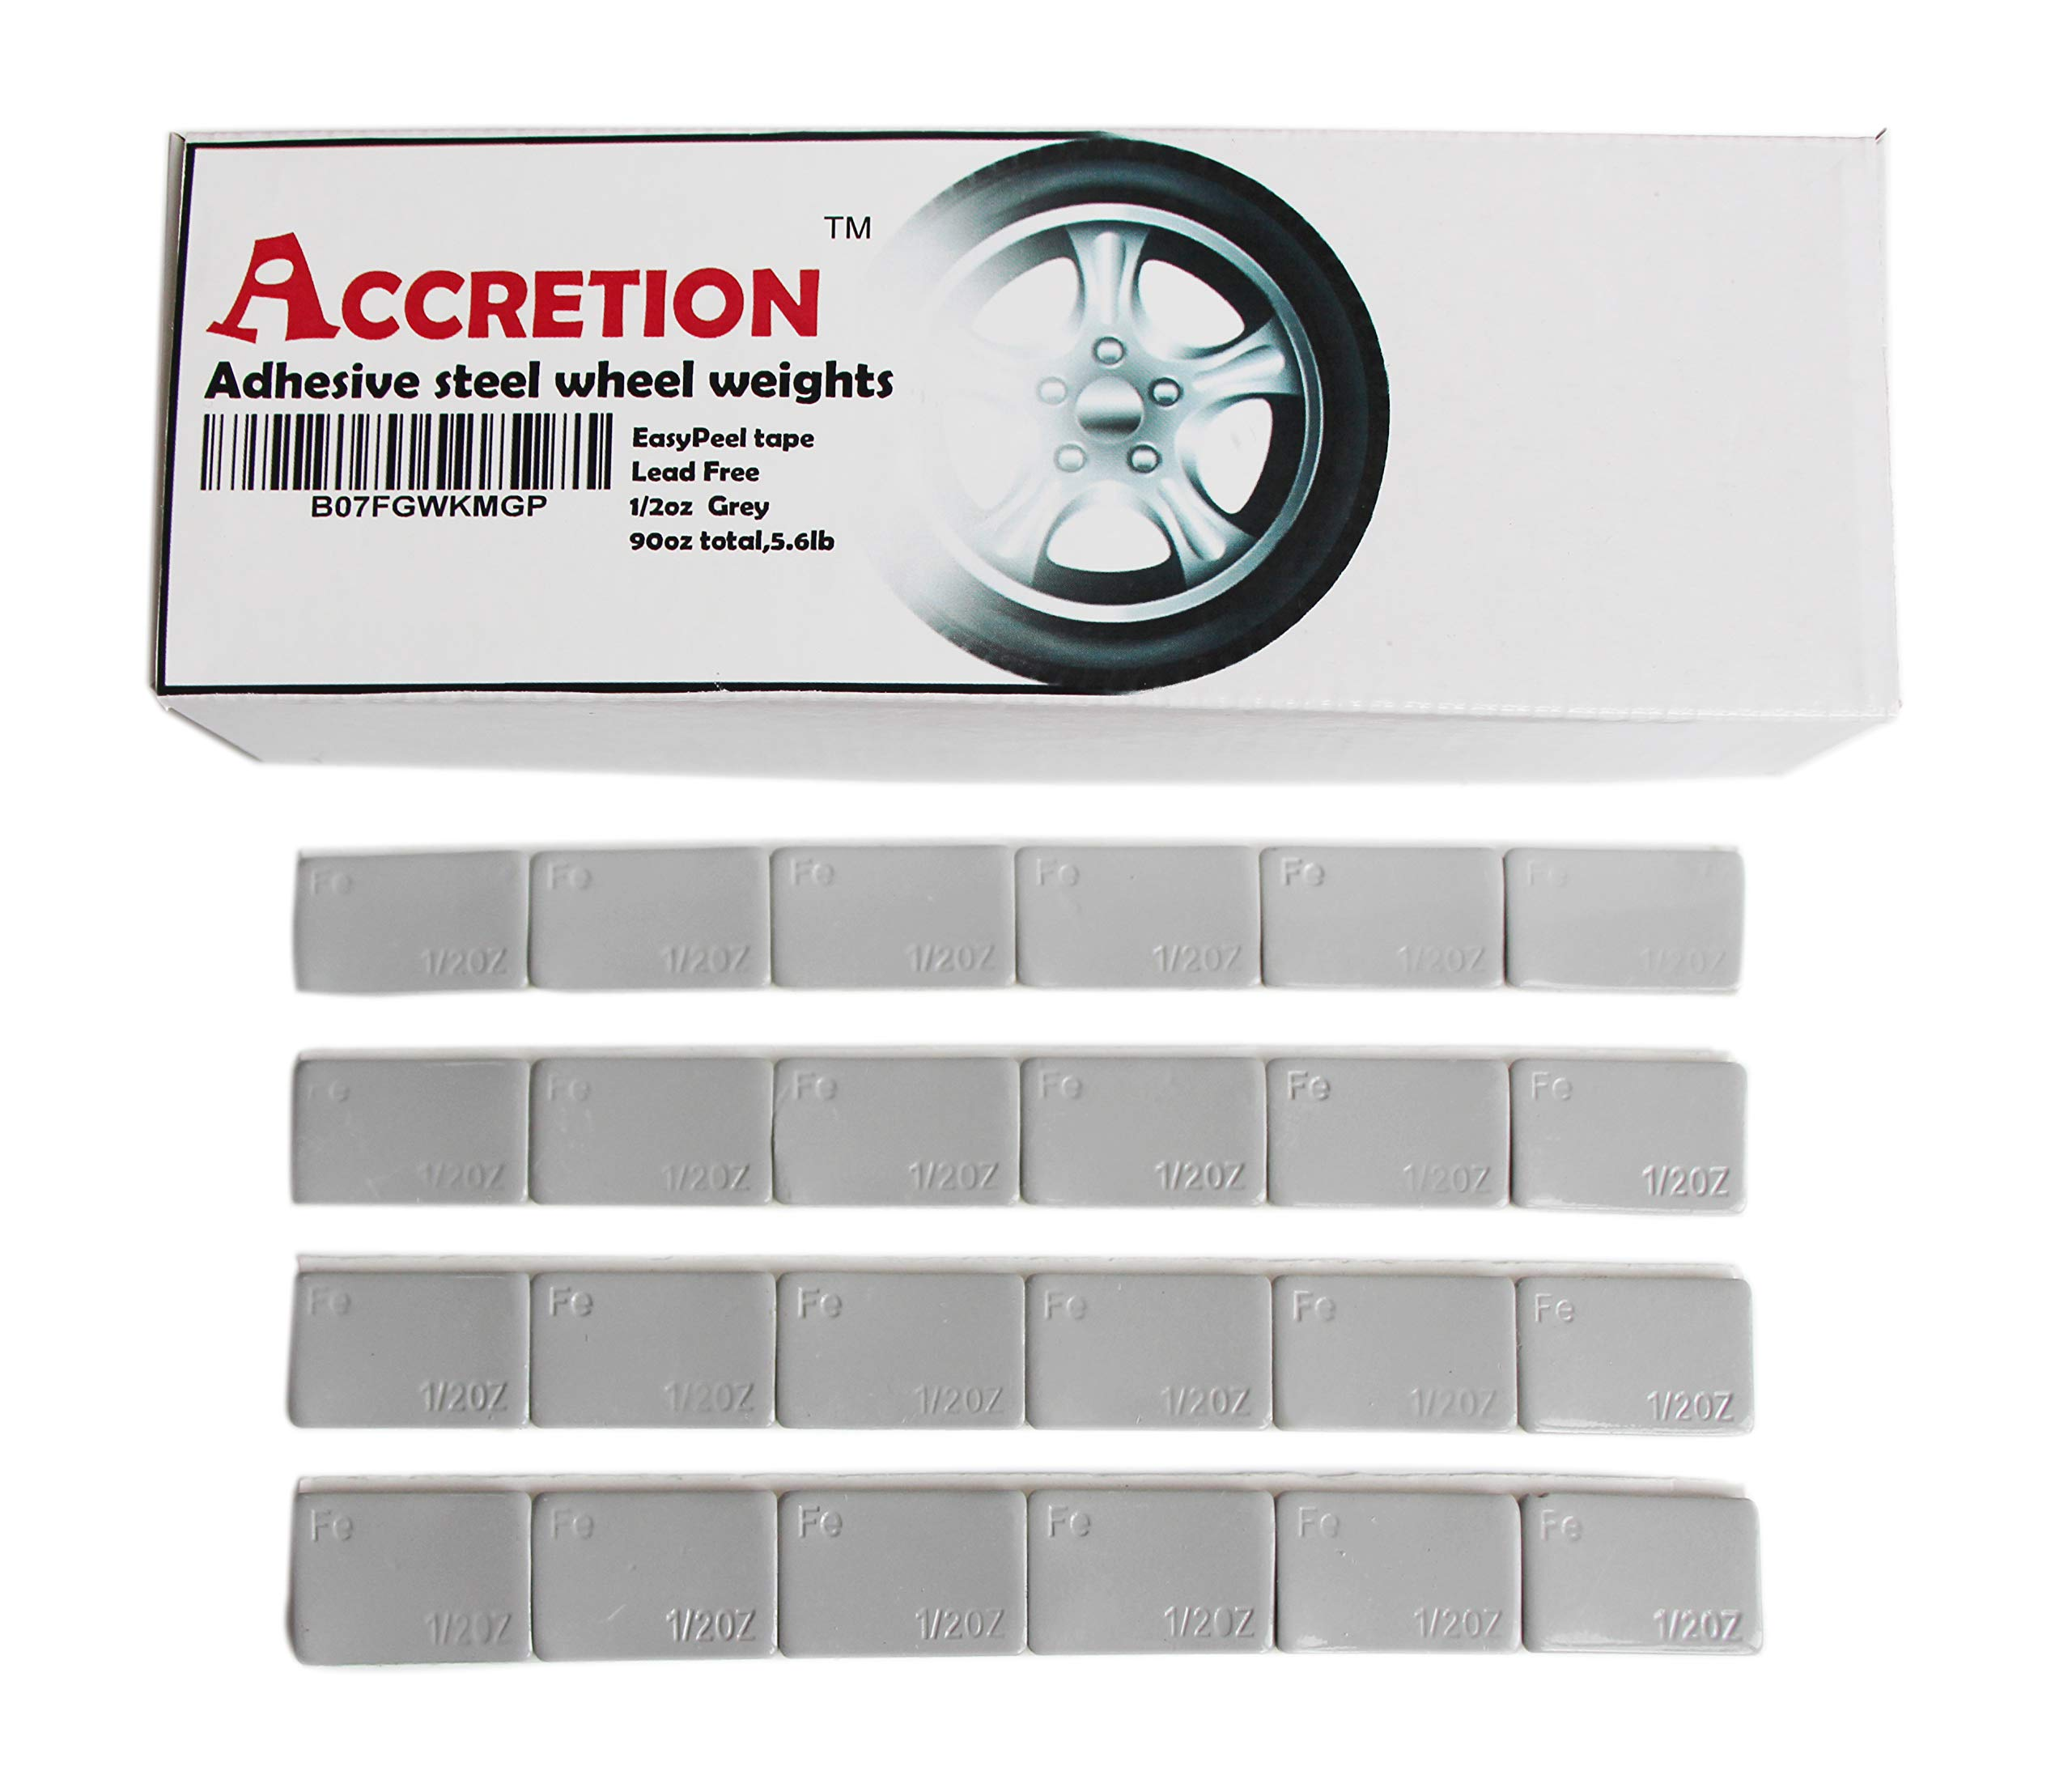 Accretion 1/2 Oz, 0.5 Oz Grey Wheel Weights (Lead Free). U.S.Made White Tape-2 mm Wide, Easy to Peel. Low Profile. 90 Oz Total,5.6 Lbs(180 pcs) by Accretion